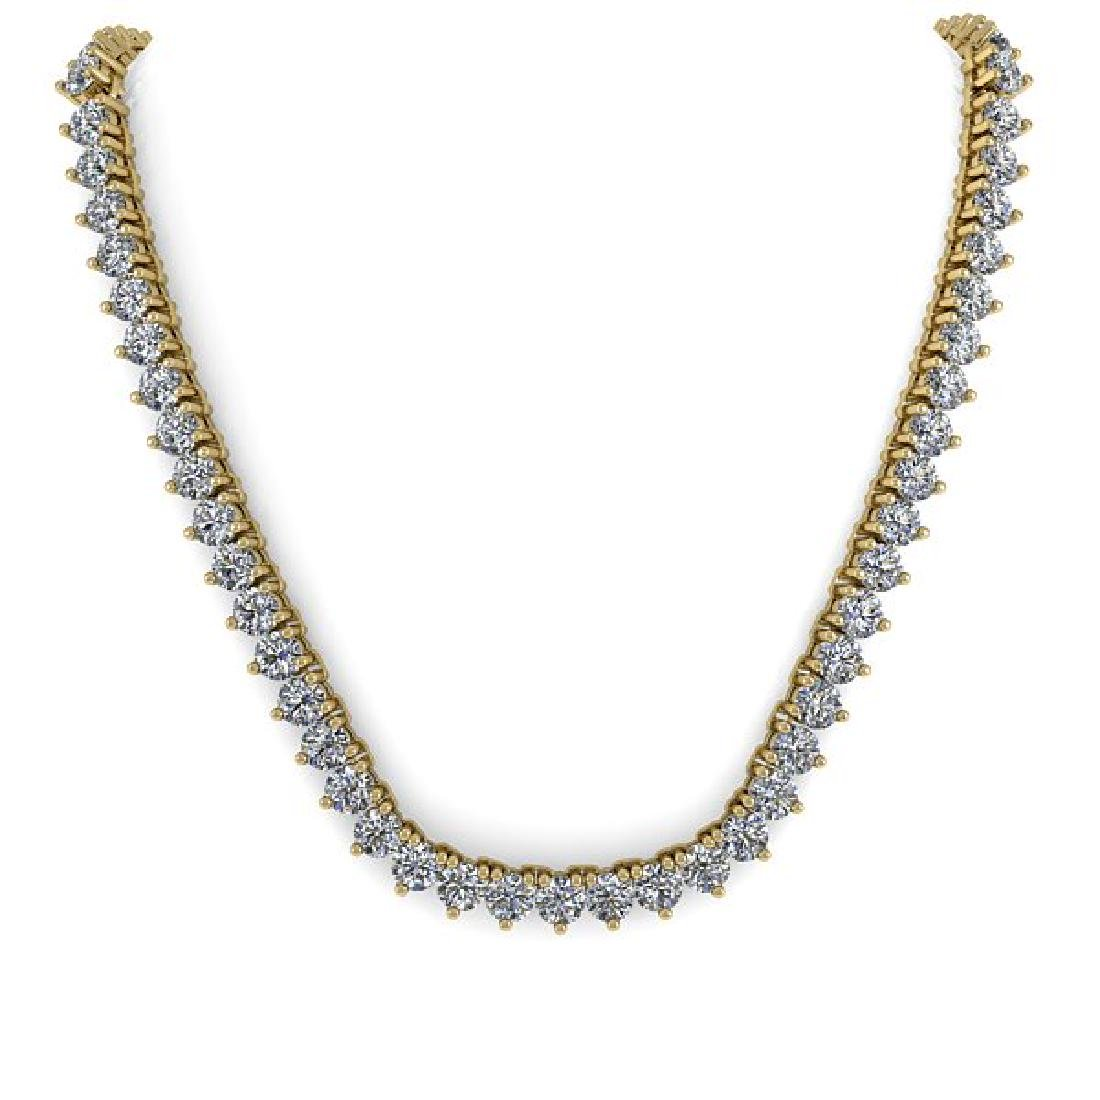 65 CTW Solitaire Certified SI Diamond Necklace 18K - 3